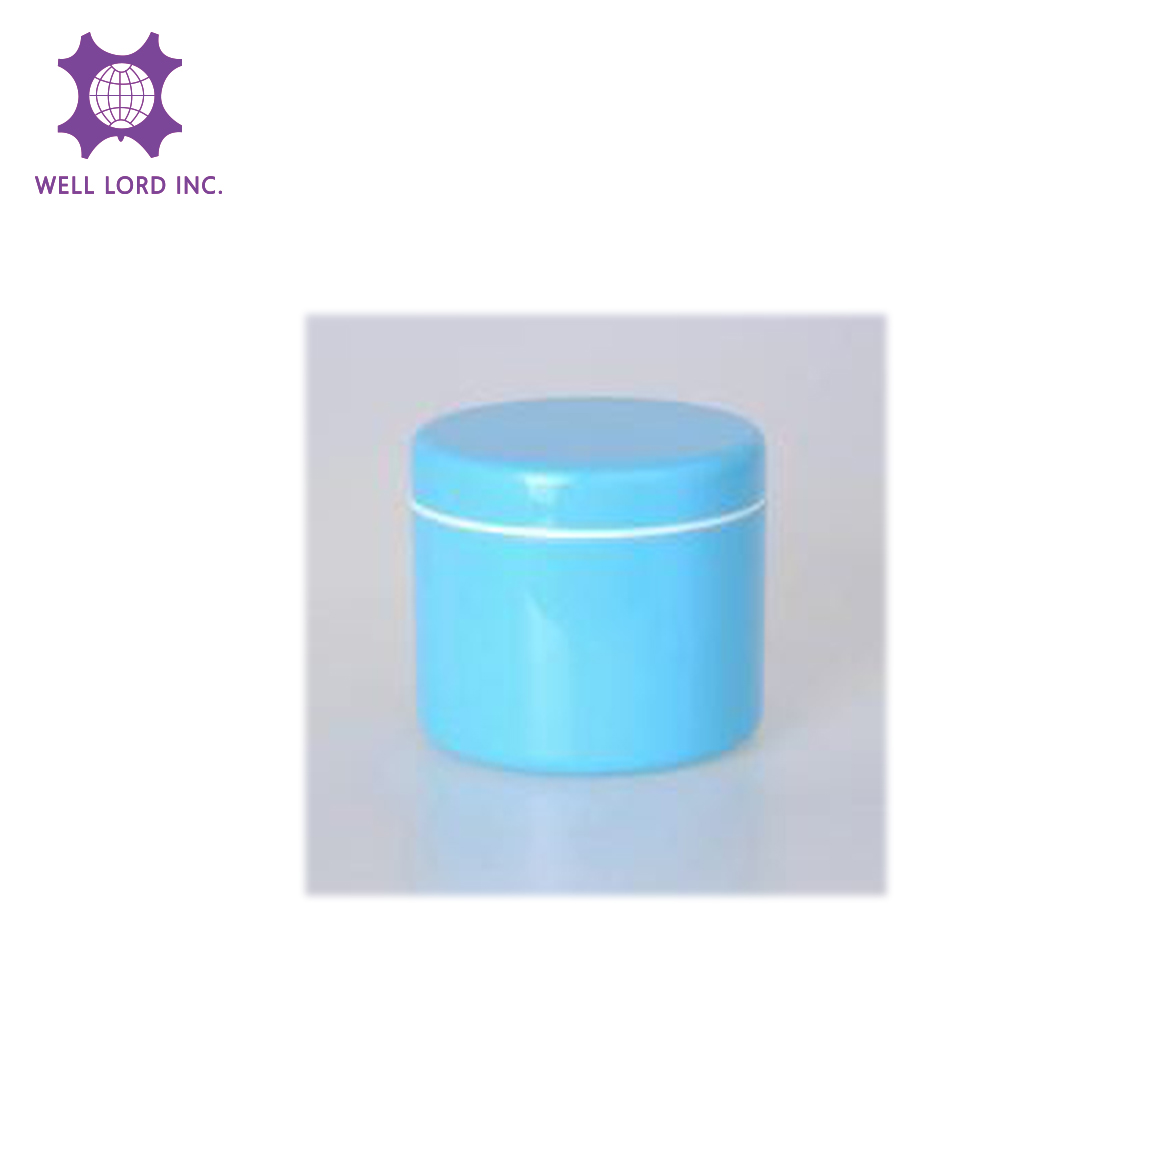 Deep Hydration Regenerating Cream Moisturizer empty jars injection clear  pet jar manufacturer